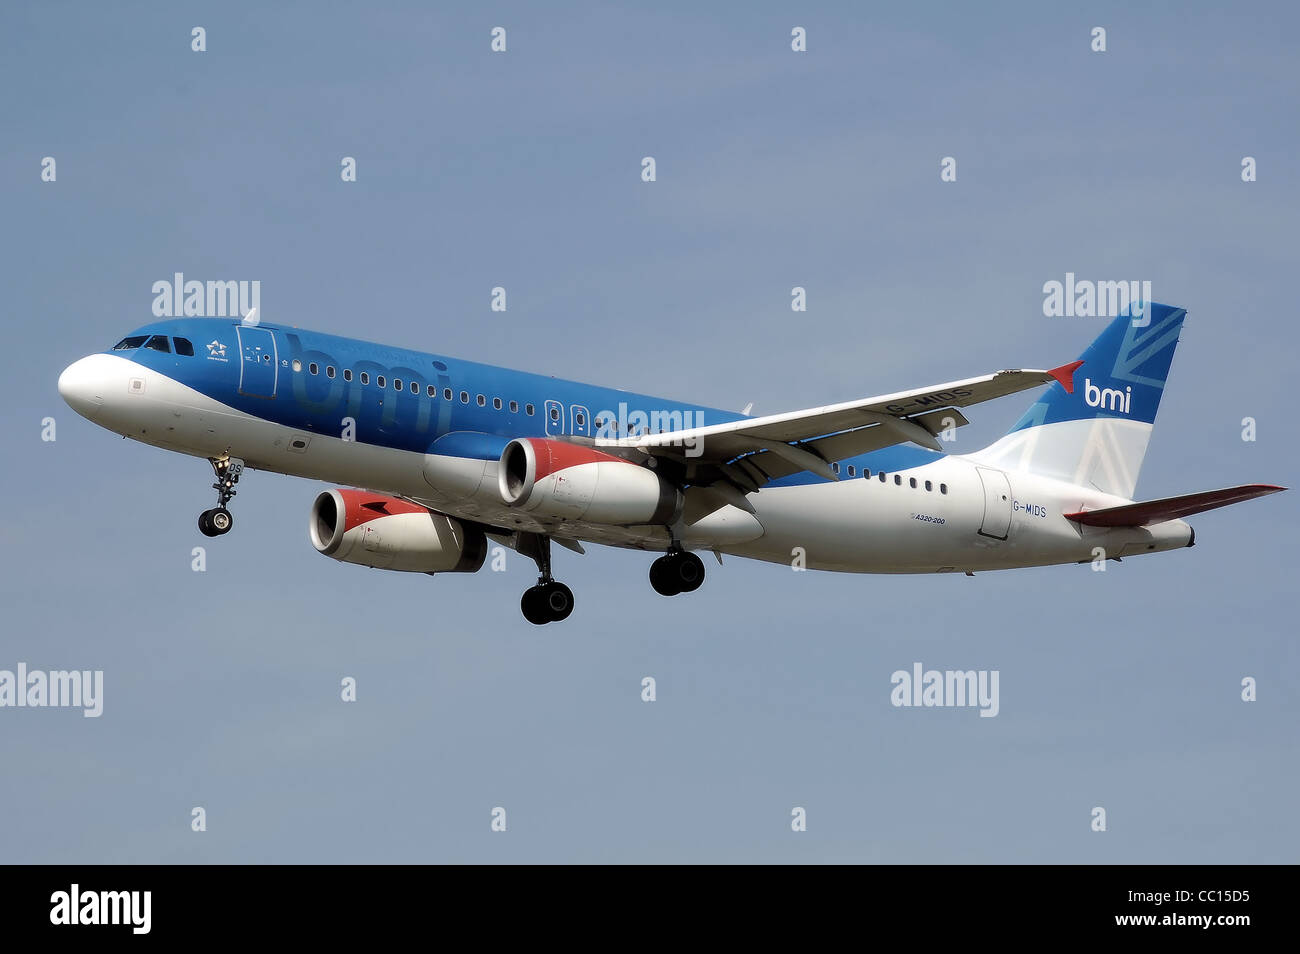 bmi Airbus A320-200 (G-MIDS) lands at London Heathrow Airport, England. - Stock Image